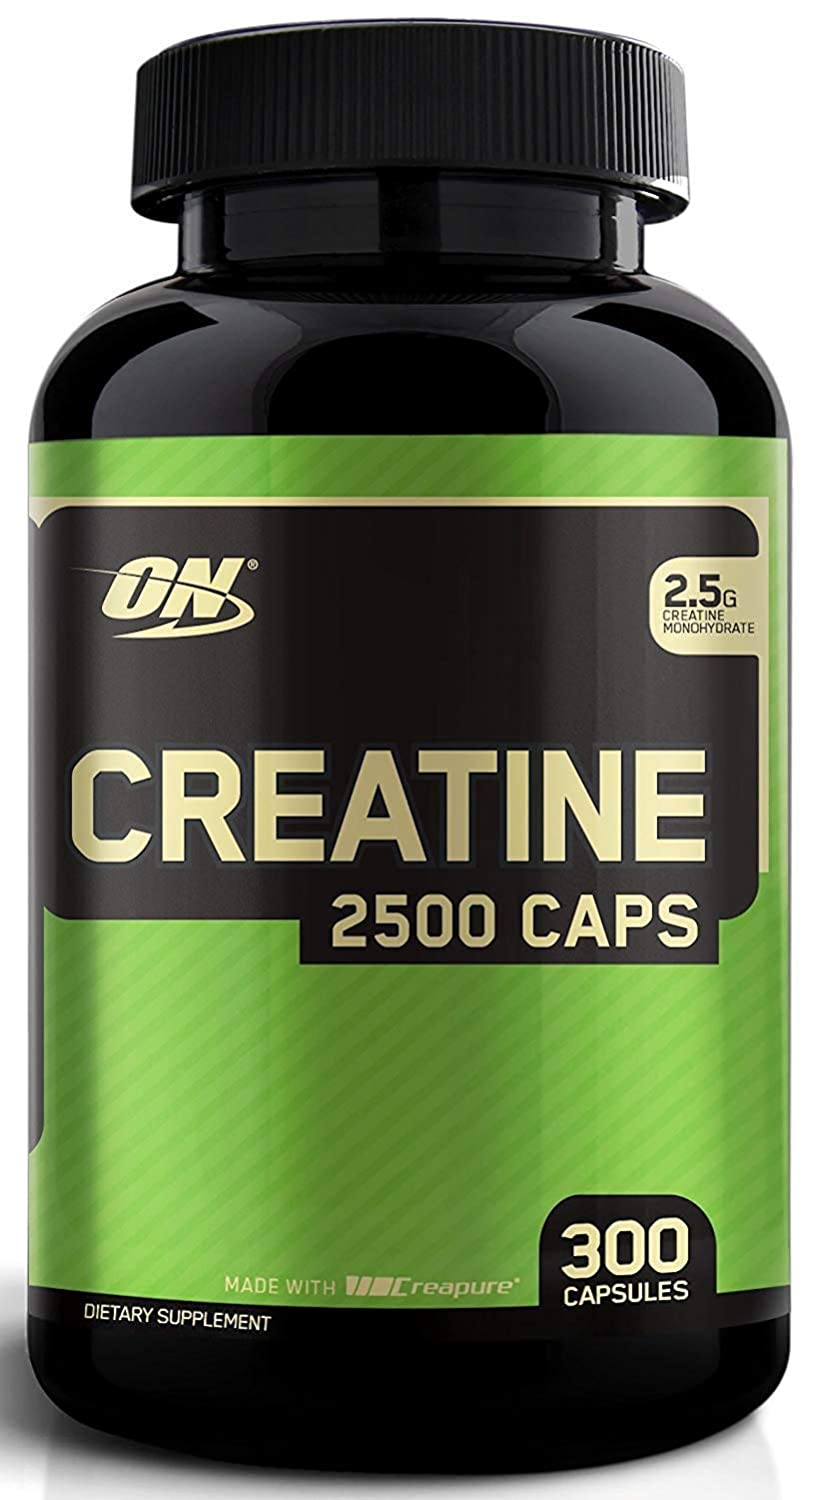 2. Optimum Nutrition CREATINE 2500 CAPS